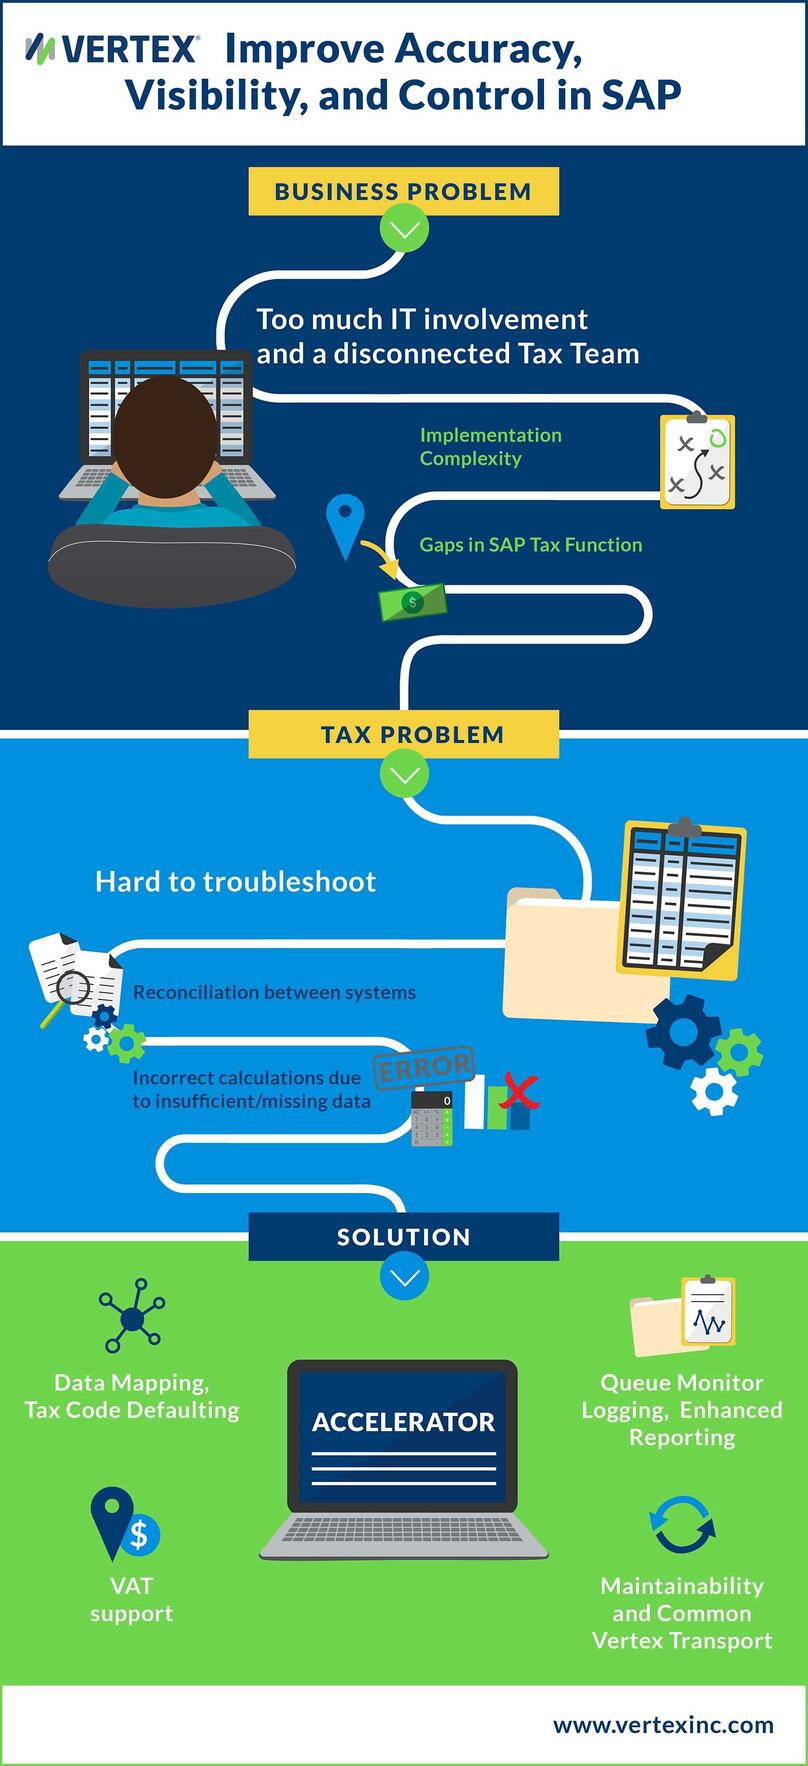 An infographic outlining how to improve accuracy, visibility, and control in SAP.